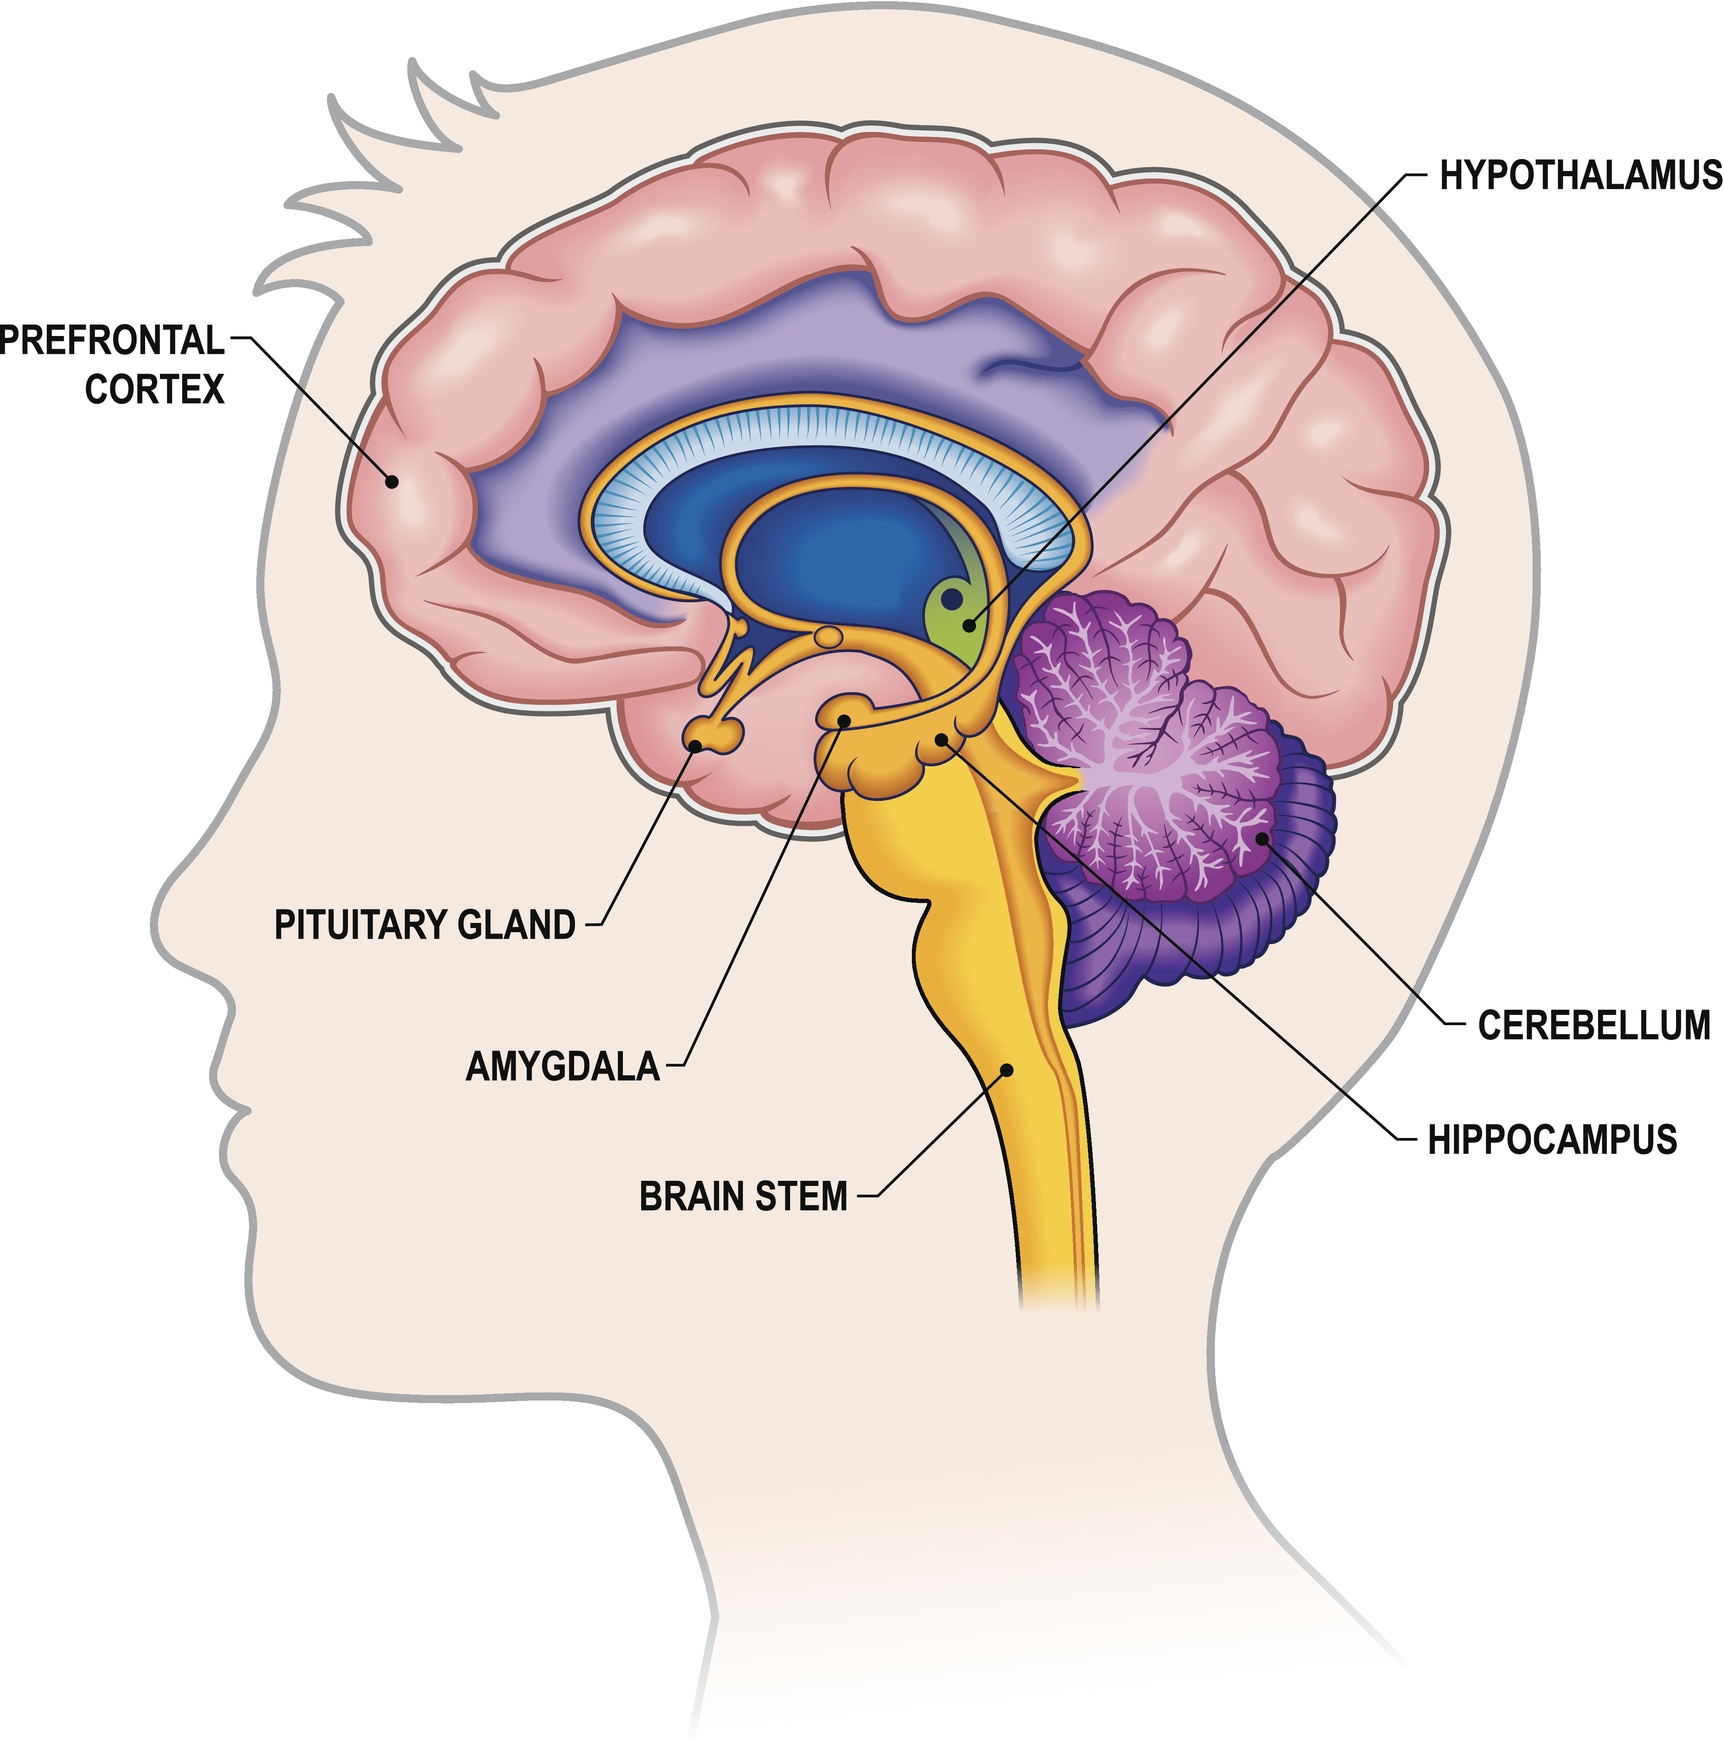 Parts of the human brain showing the amygdala